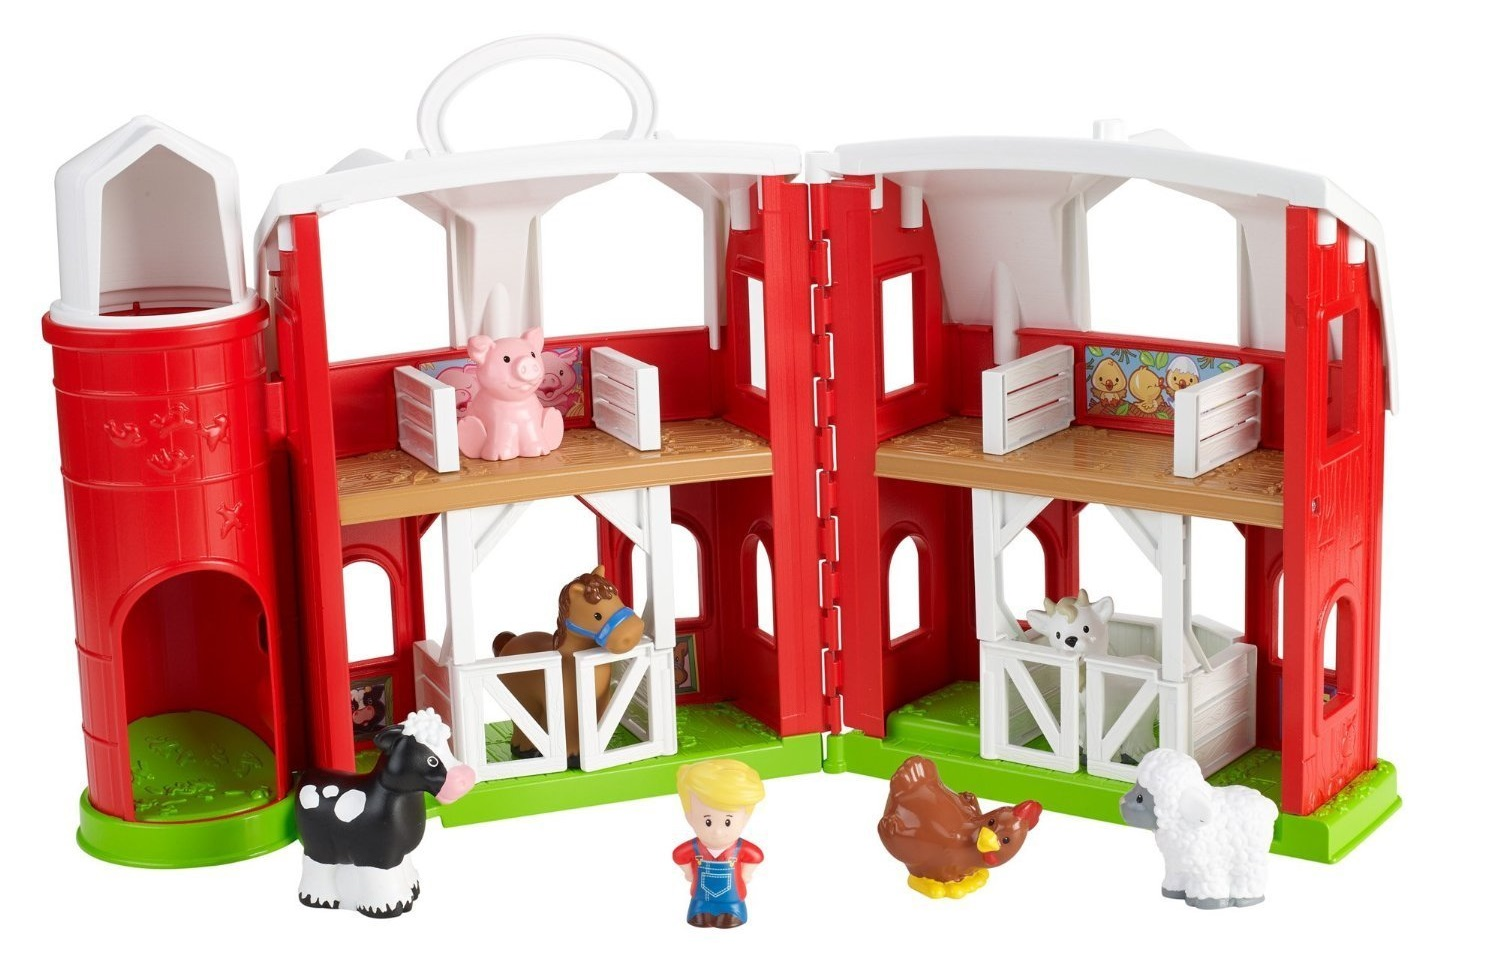 Farm Toddler Toys Age Two : Toy farm sets with animals to choose from